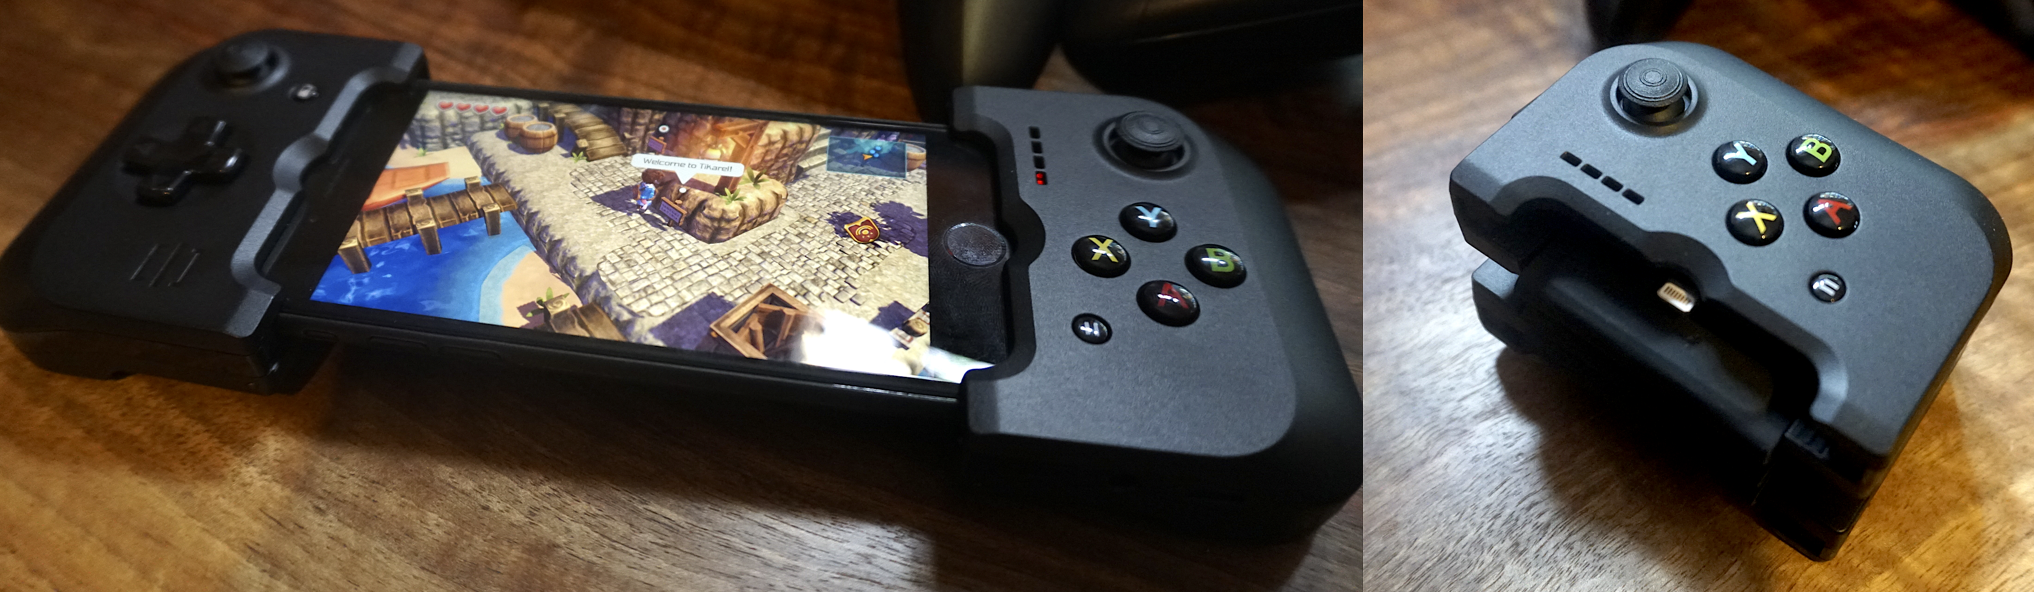 mfi-gamevice-iphone-controller